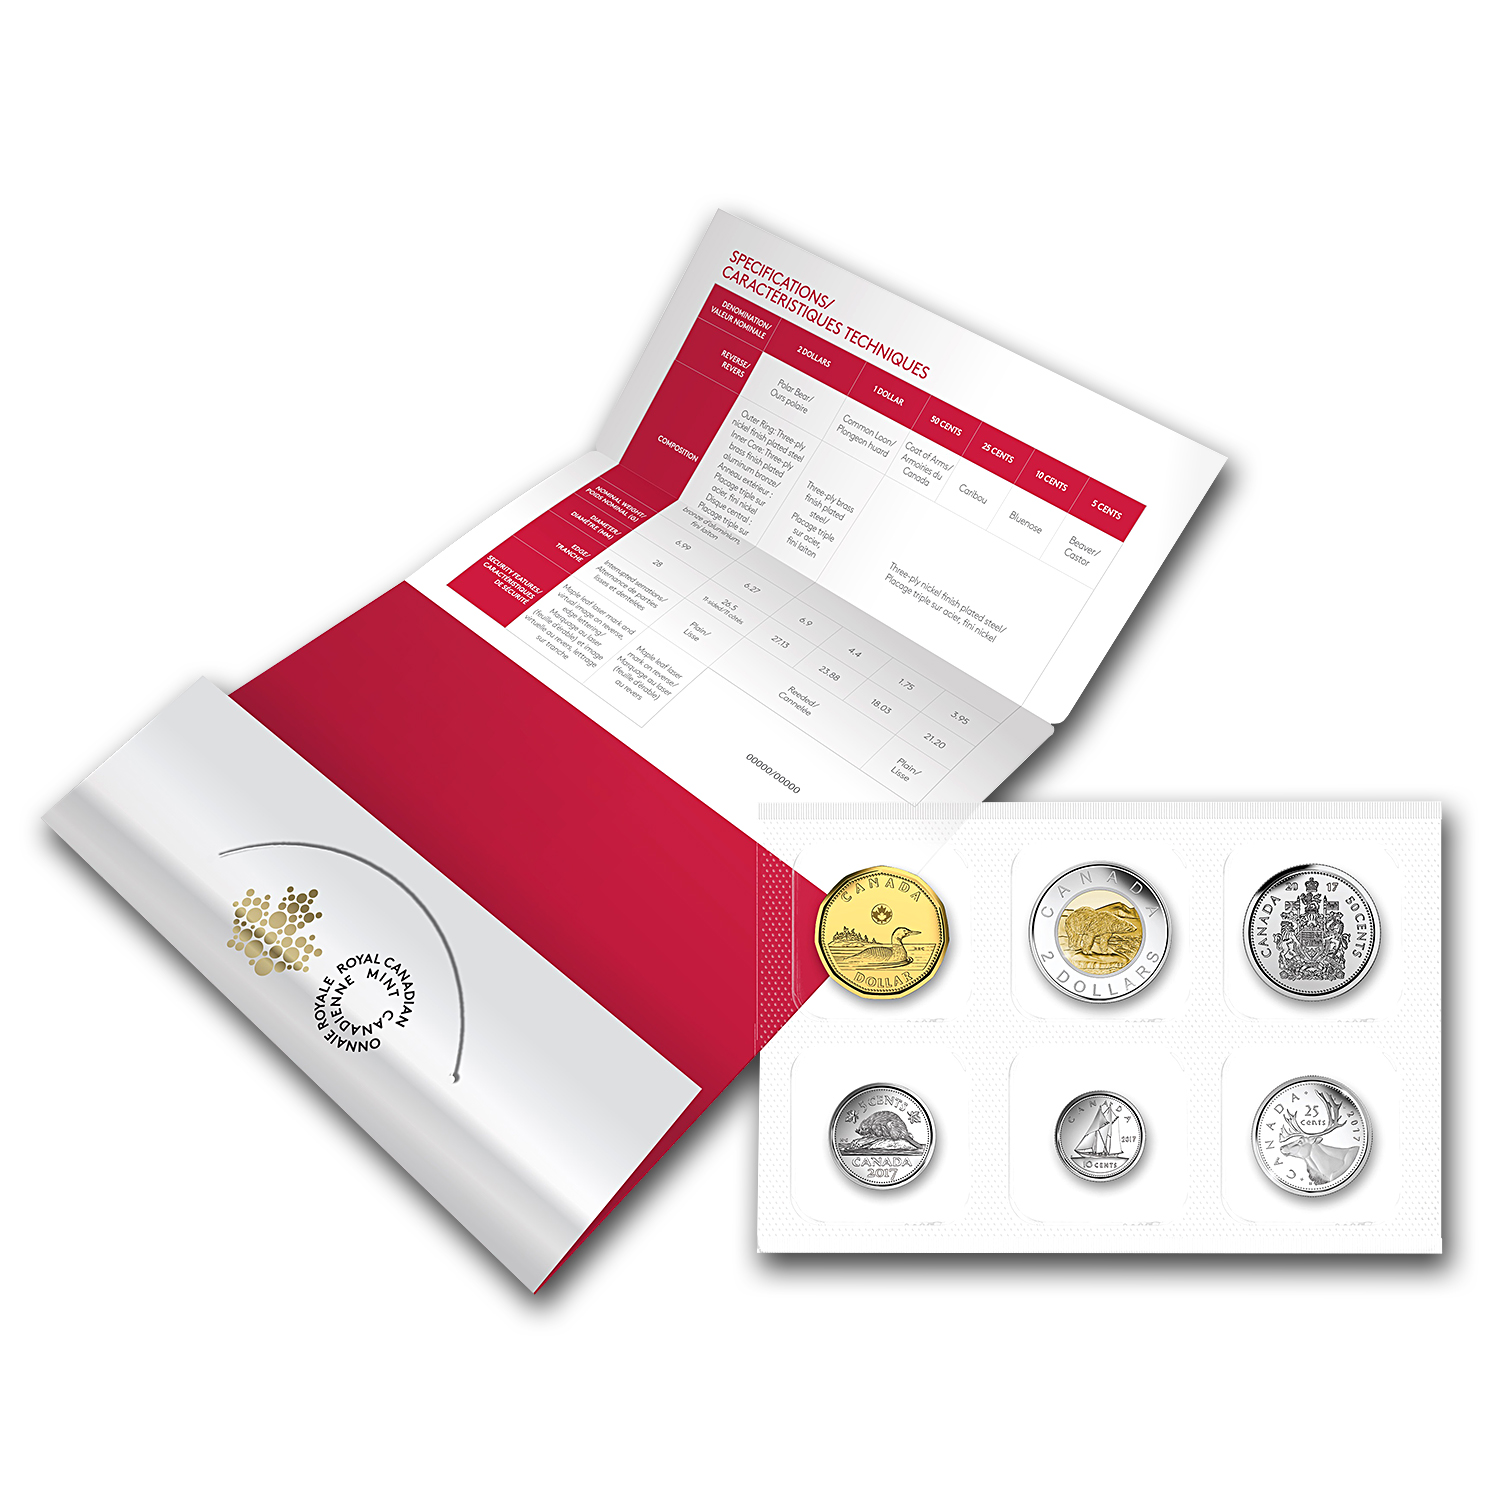 2017 6-Coin Classic Canadian Coin Set: 150th Anniversary